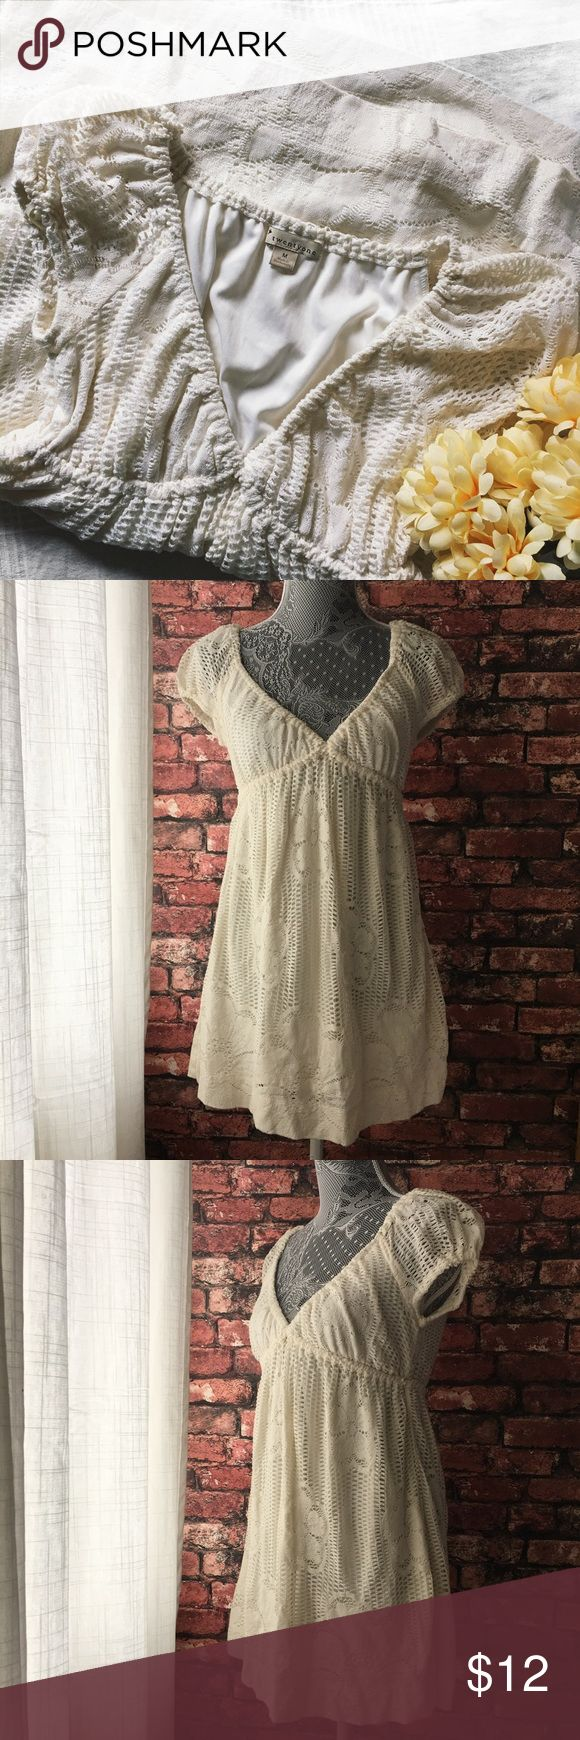 Forever 21 Lace Sundress The perfect cream sundress with cute lace details and a cream lining inside. Nice spring and summer time piece for your wardrobe. Perfect for a warm vacation or a day at the beach.  In good condition.  85% Cotton 15% Nylon Lining 100% Polyester  Made in Guatemala   Sleeves 6.5in Bust 18in Length 30.5 (Measured from Shoulders) Forever 21 Dresses